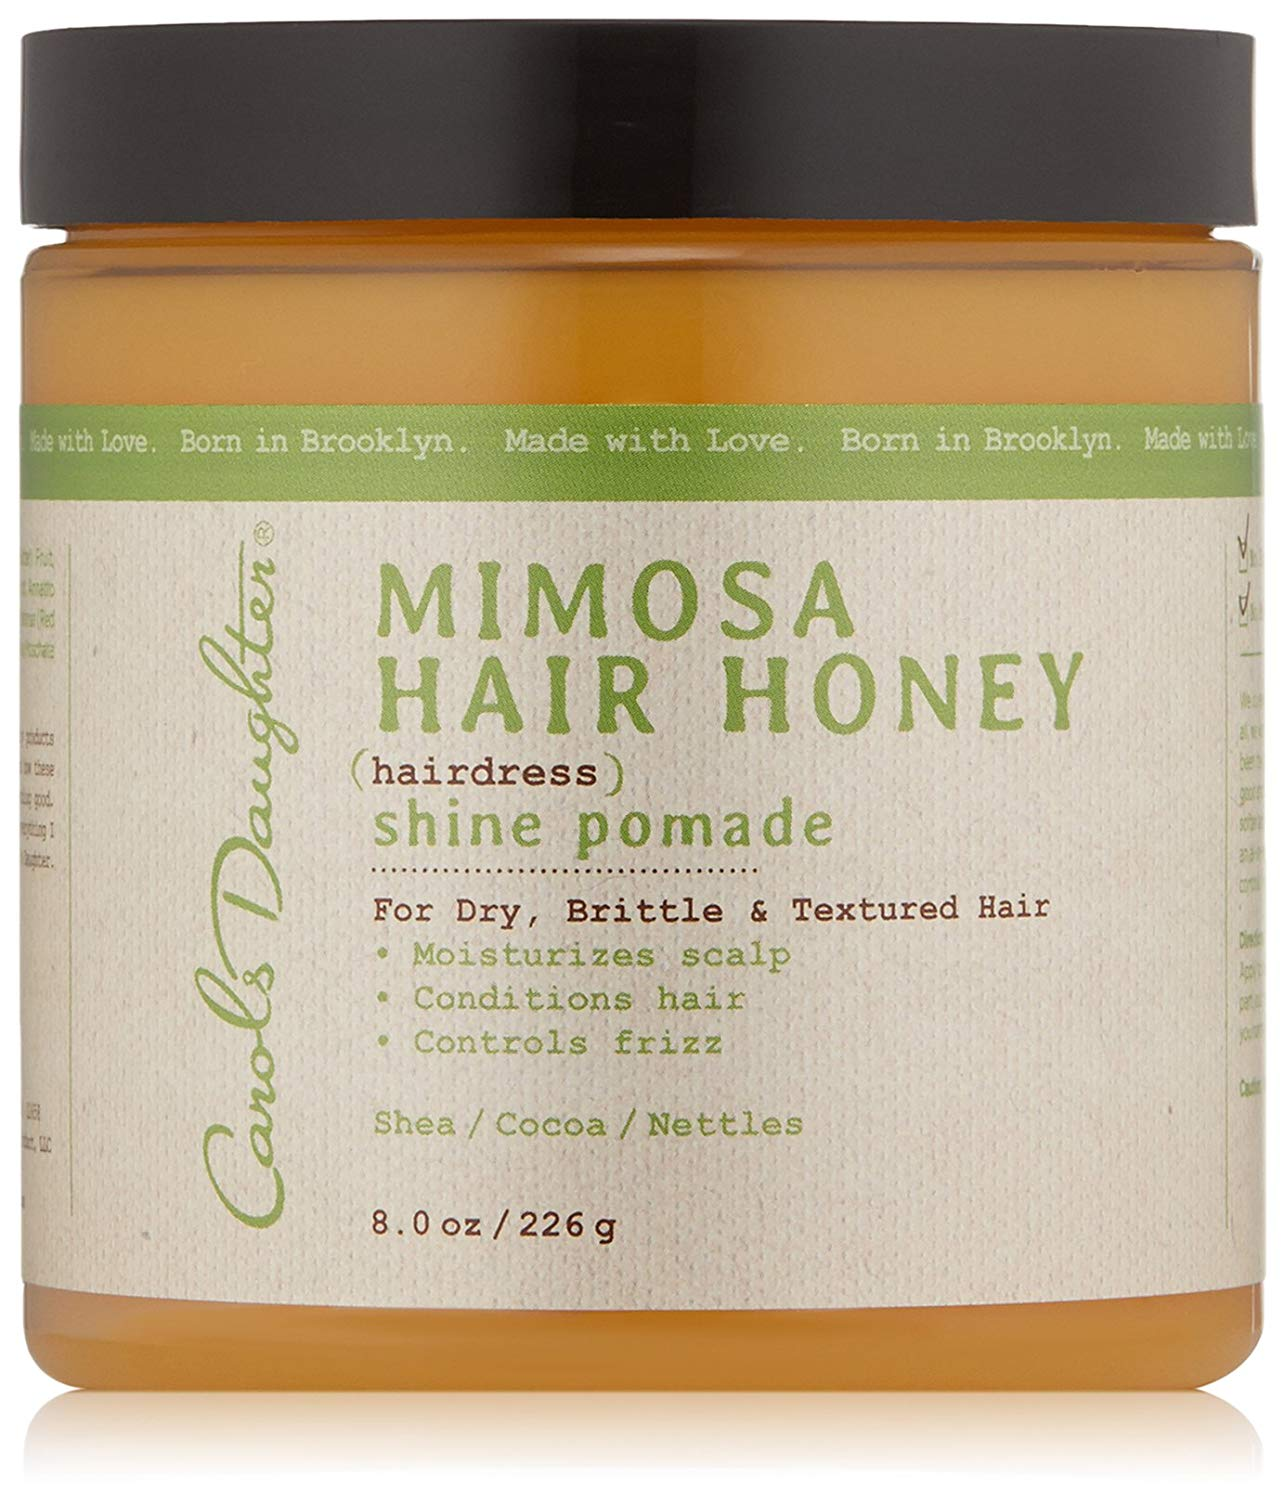 Carol's Daughter Mimosa Hair Honey Shine Pomade For Dry Hair and Textured Hair